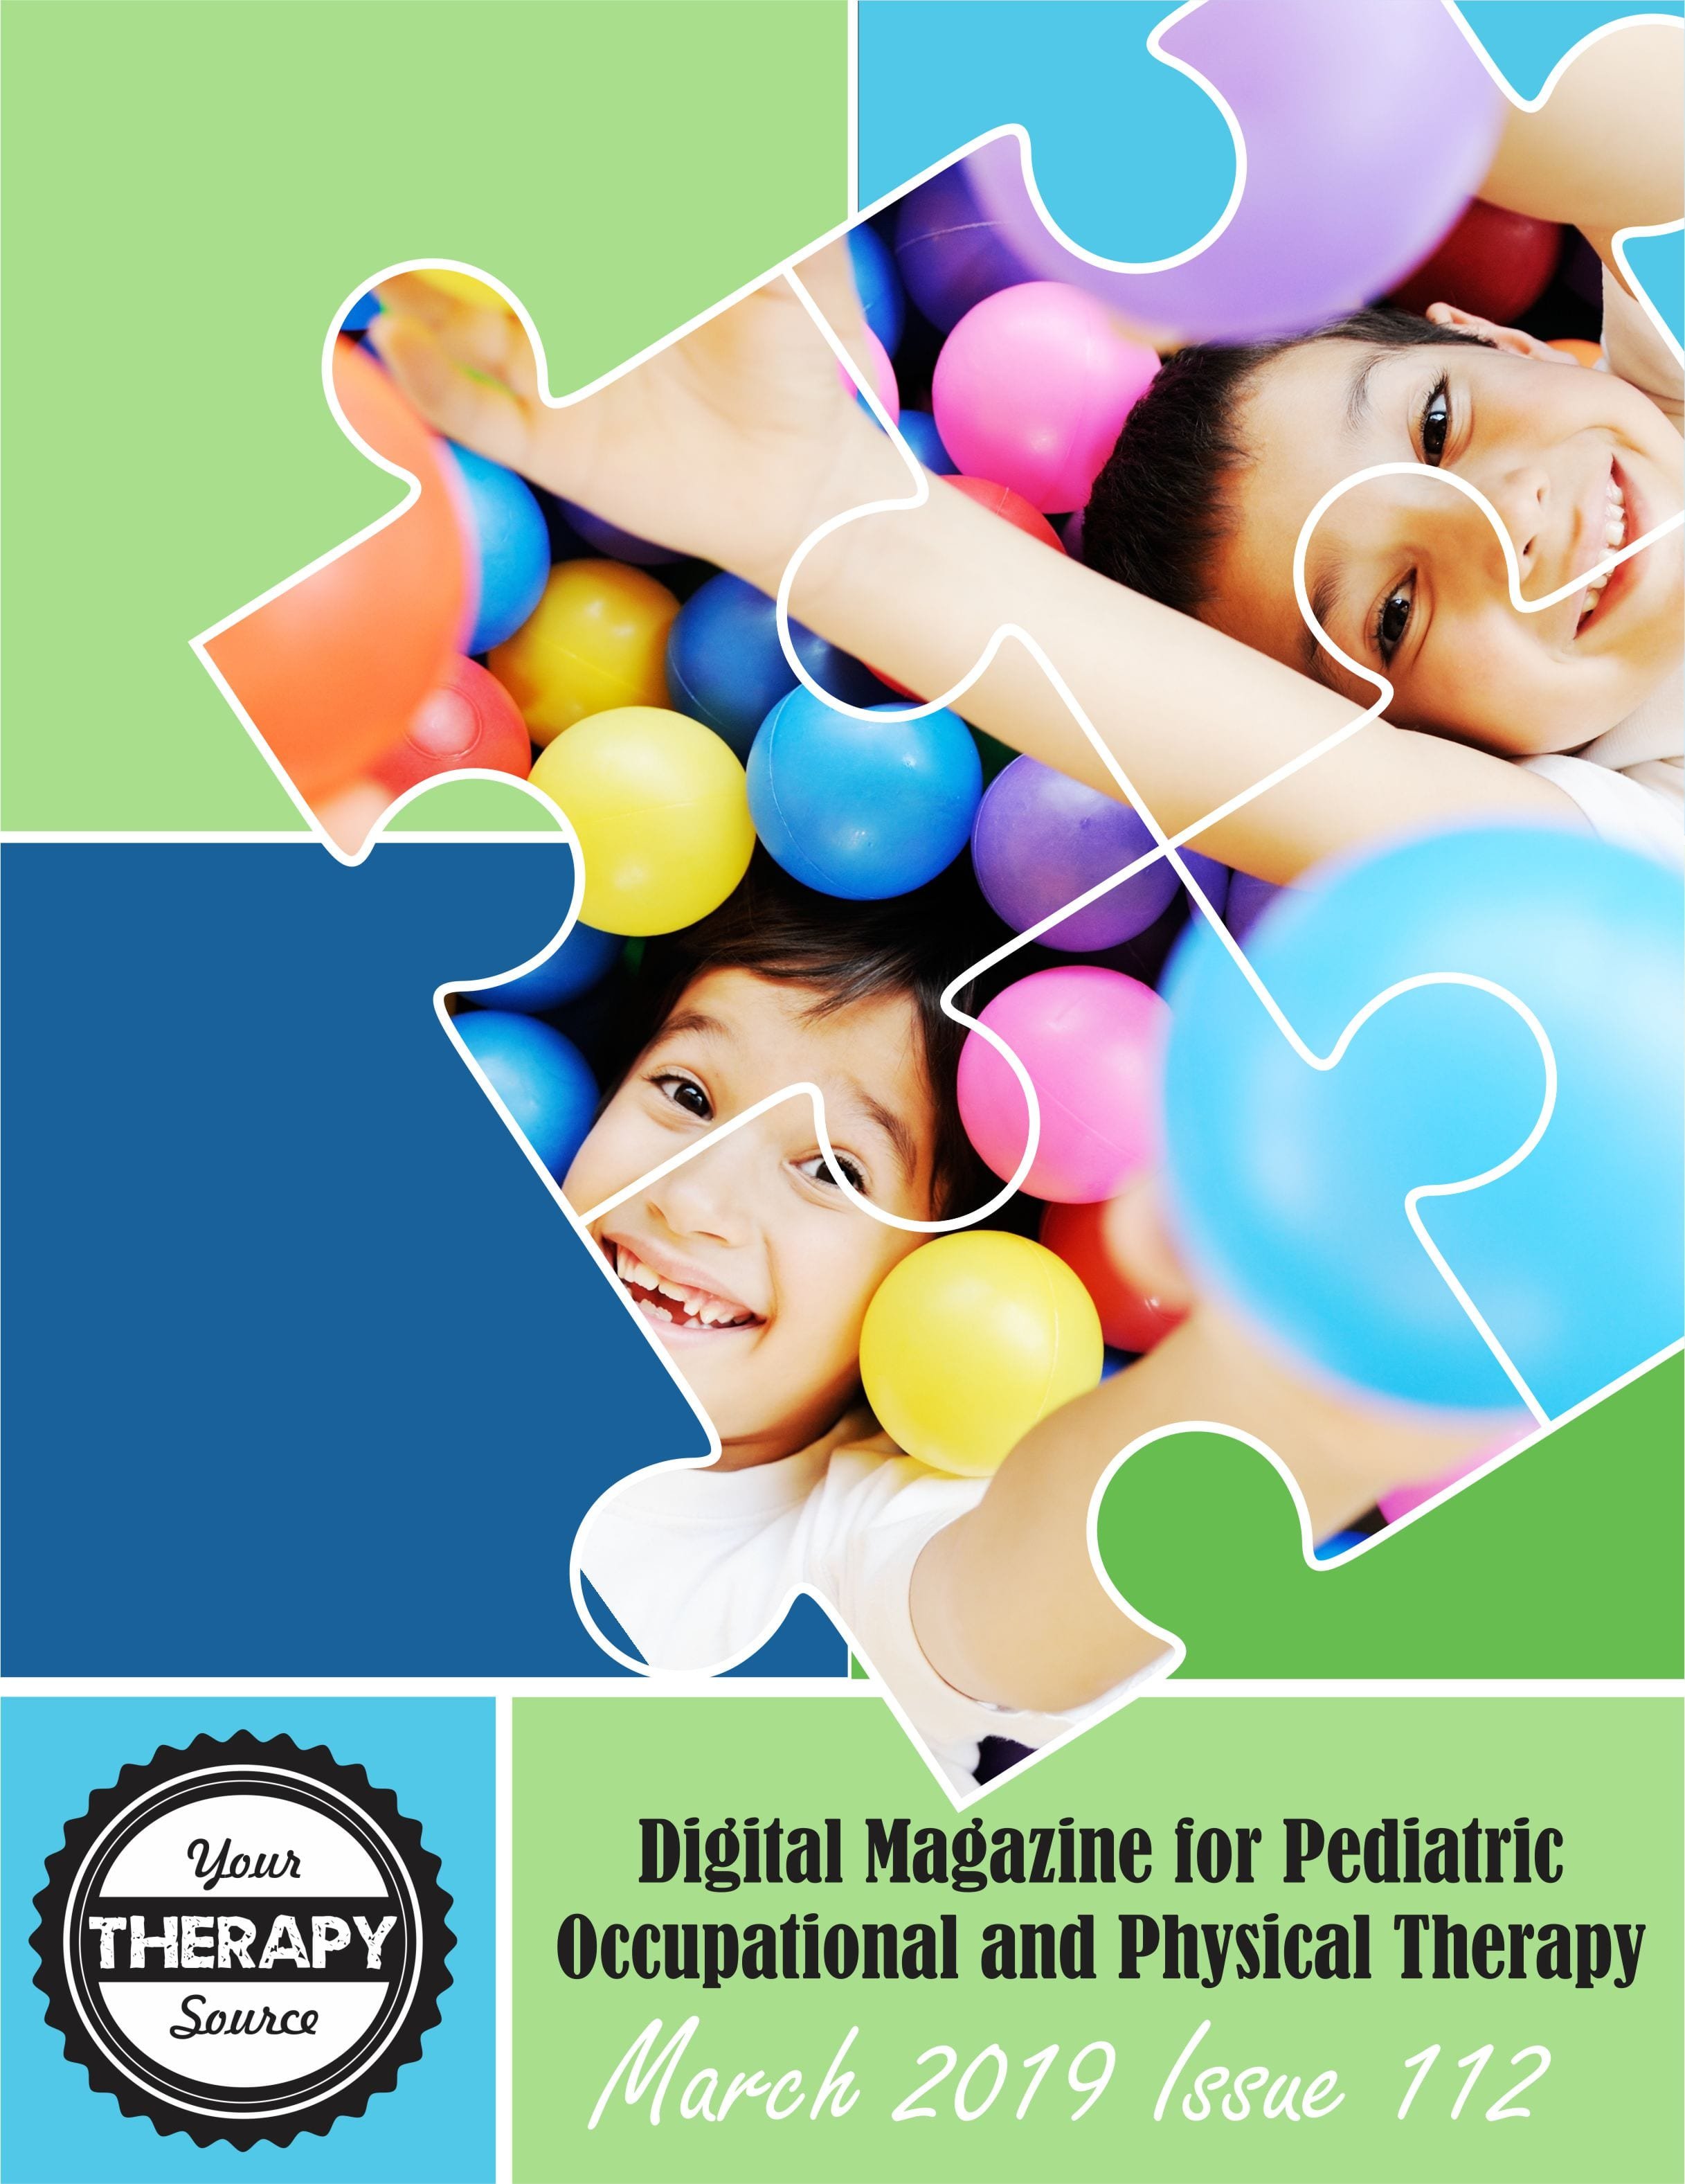 The March 2019 digital magazine from Your Therapy Source has been posted. Catch up on recent research, activity ideas and more